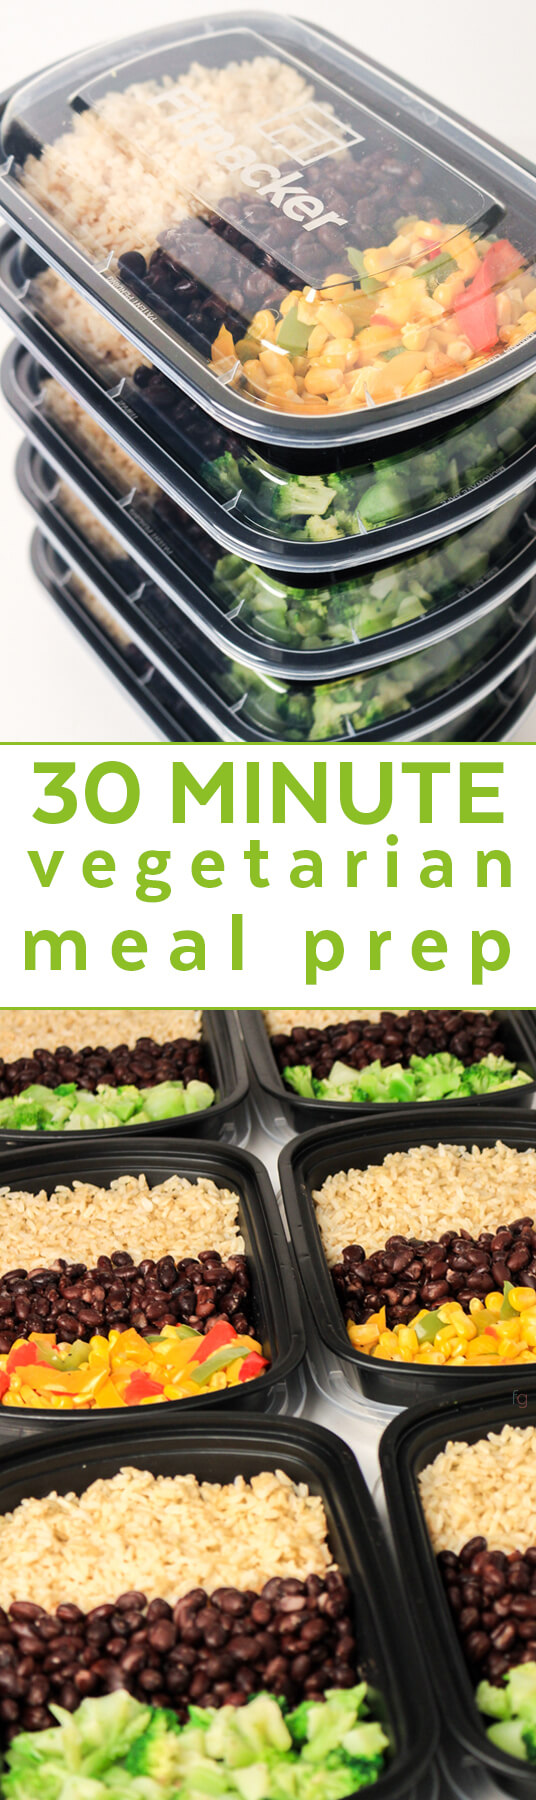 Vegan Meal Prep on a Budget - Easy Vegetarian Meal Prep for the Week - Make Ahead Meals Healthy - Lunch Ideas - Lunch Box Ideas for Adults - Cheap Meals on a Budget - Frugal Living Ideas